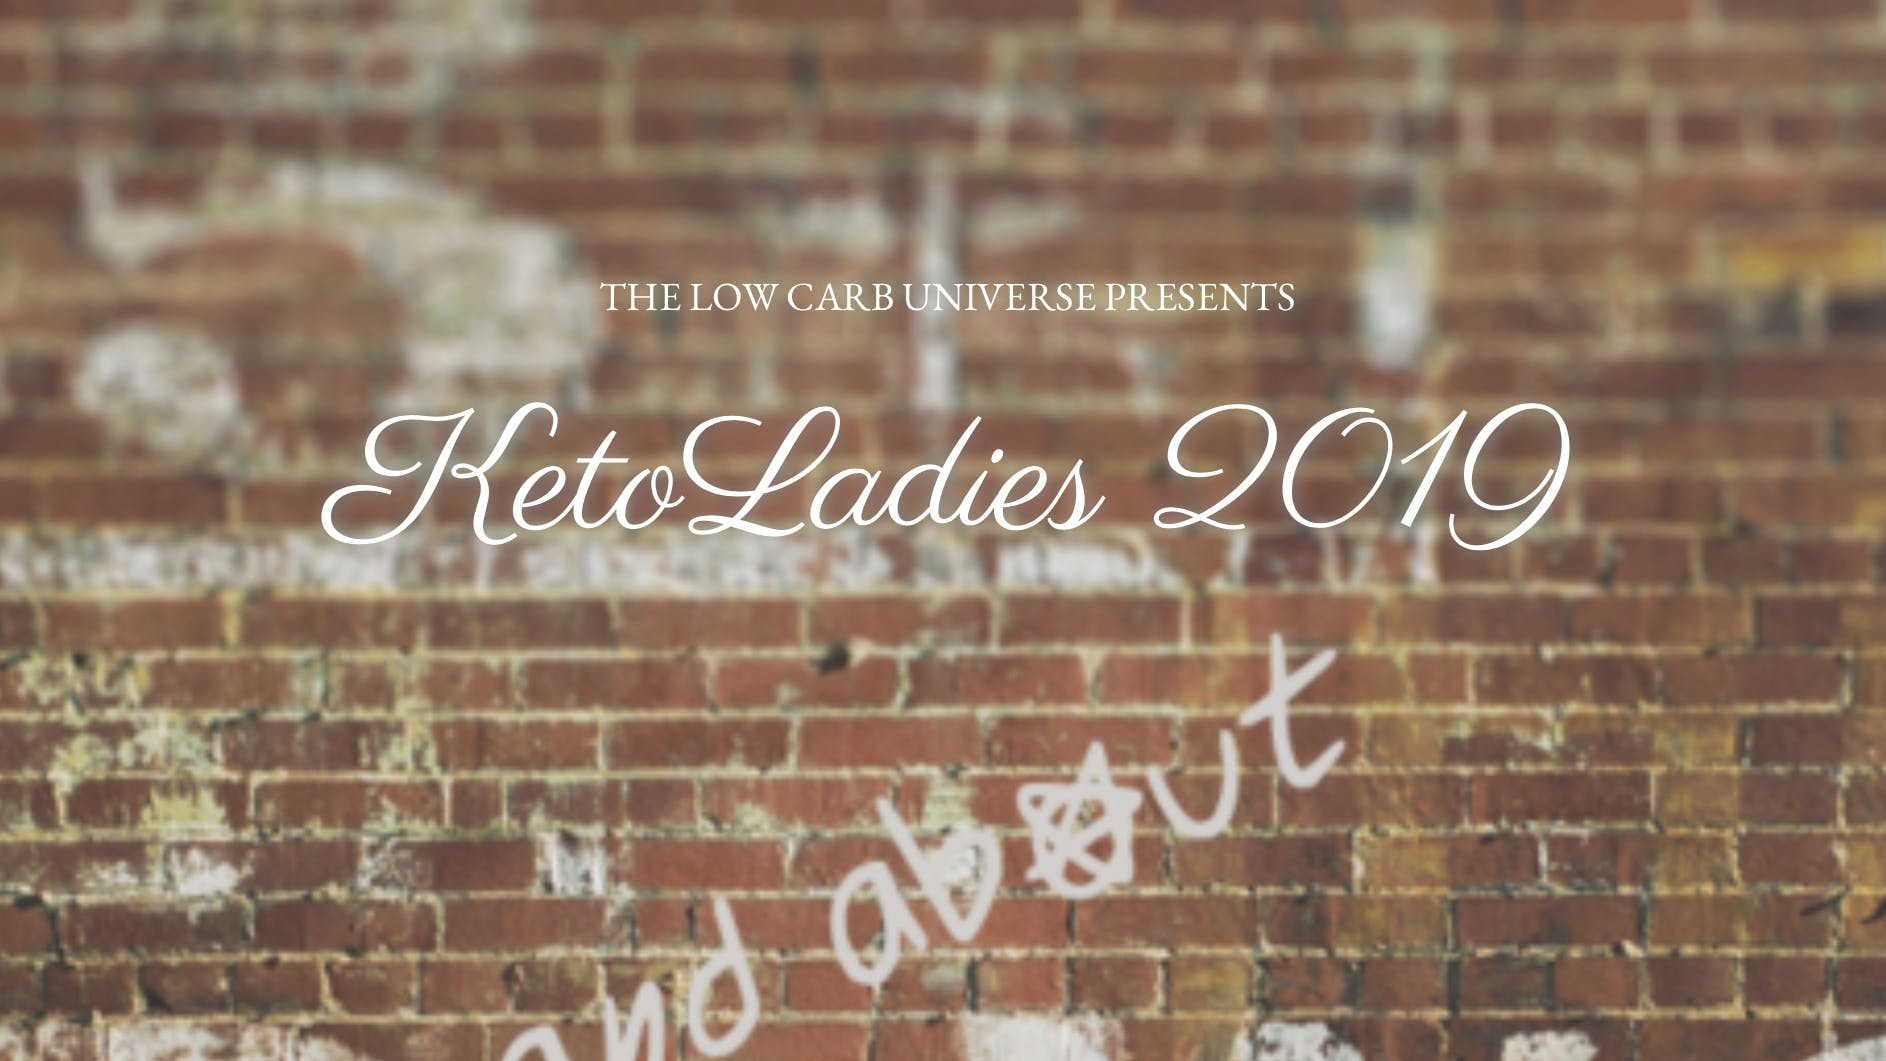 Don't miss booking your tickets to KetoLadies 2019!